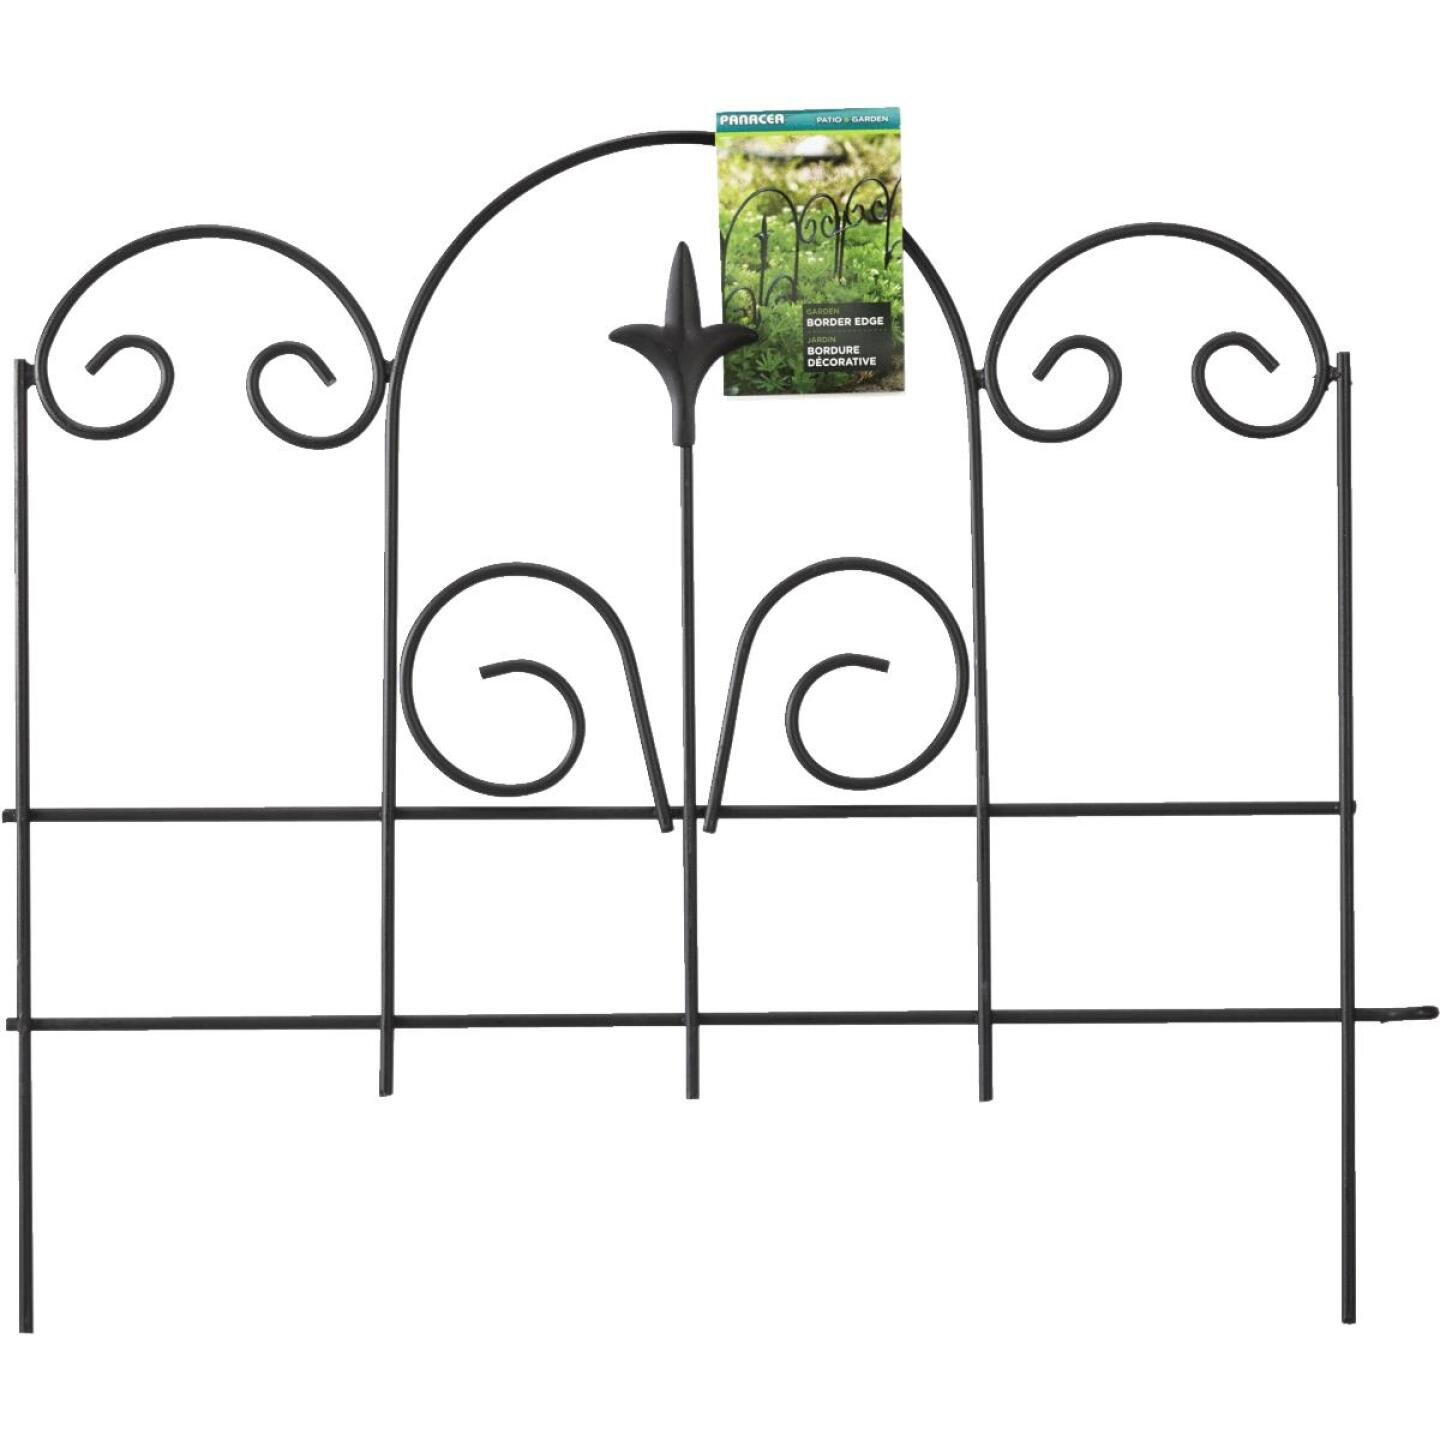 Panacea 16 In. H x 18 In. L Metal Decorative Border Fence Image 2